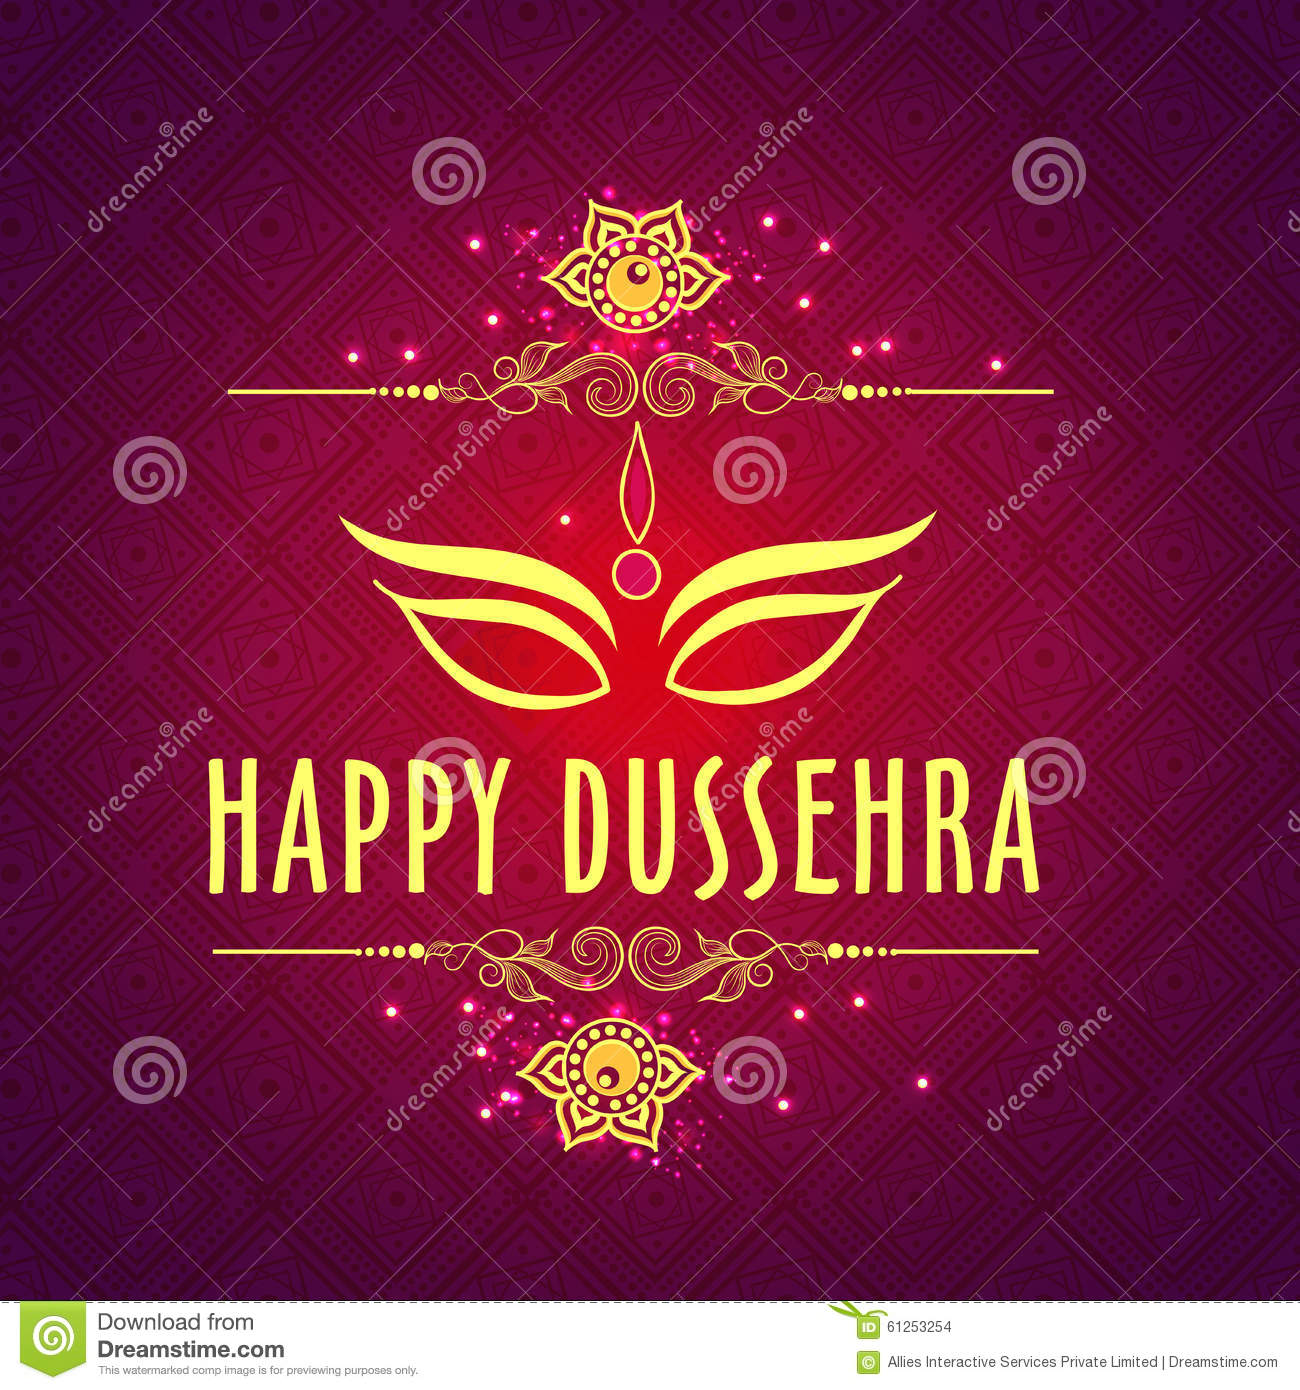 Beautiful greeting card for happy dussehra stock illustration download beautiful greeting card for happy dussehra stock illustration illustration of dussehra historical m4hsunfo